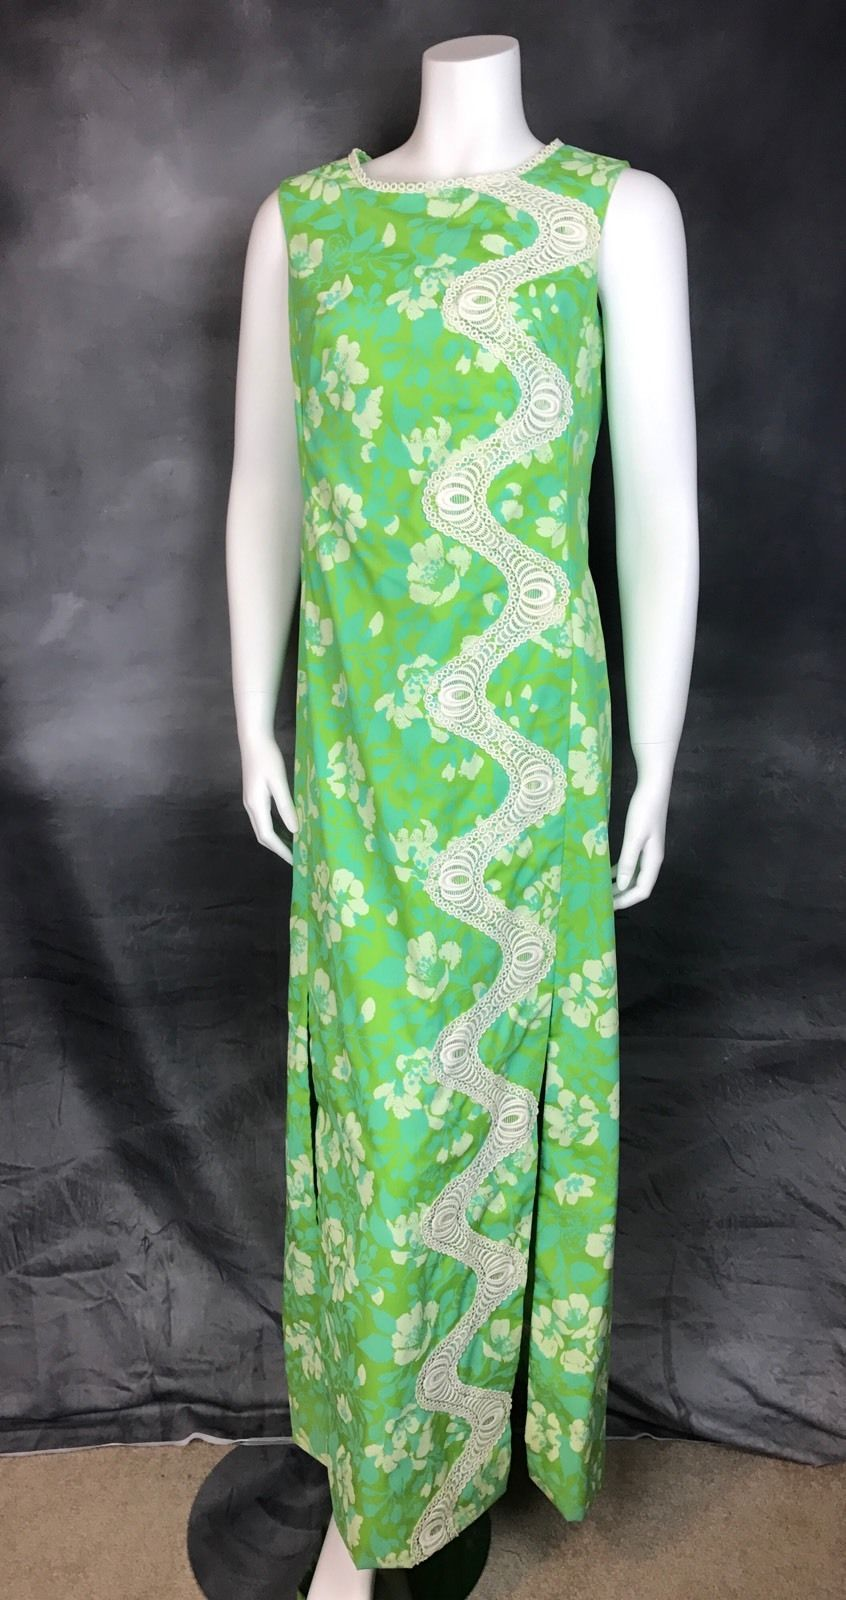 d417936514644e 1960s The Lilly Pulitzer Maxi Dress Blue Green Floral Print Lace Shift dress  M | eBay